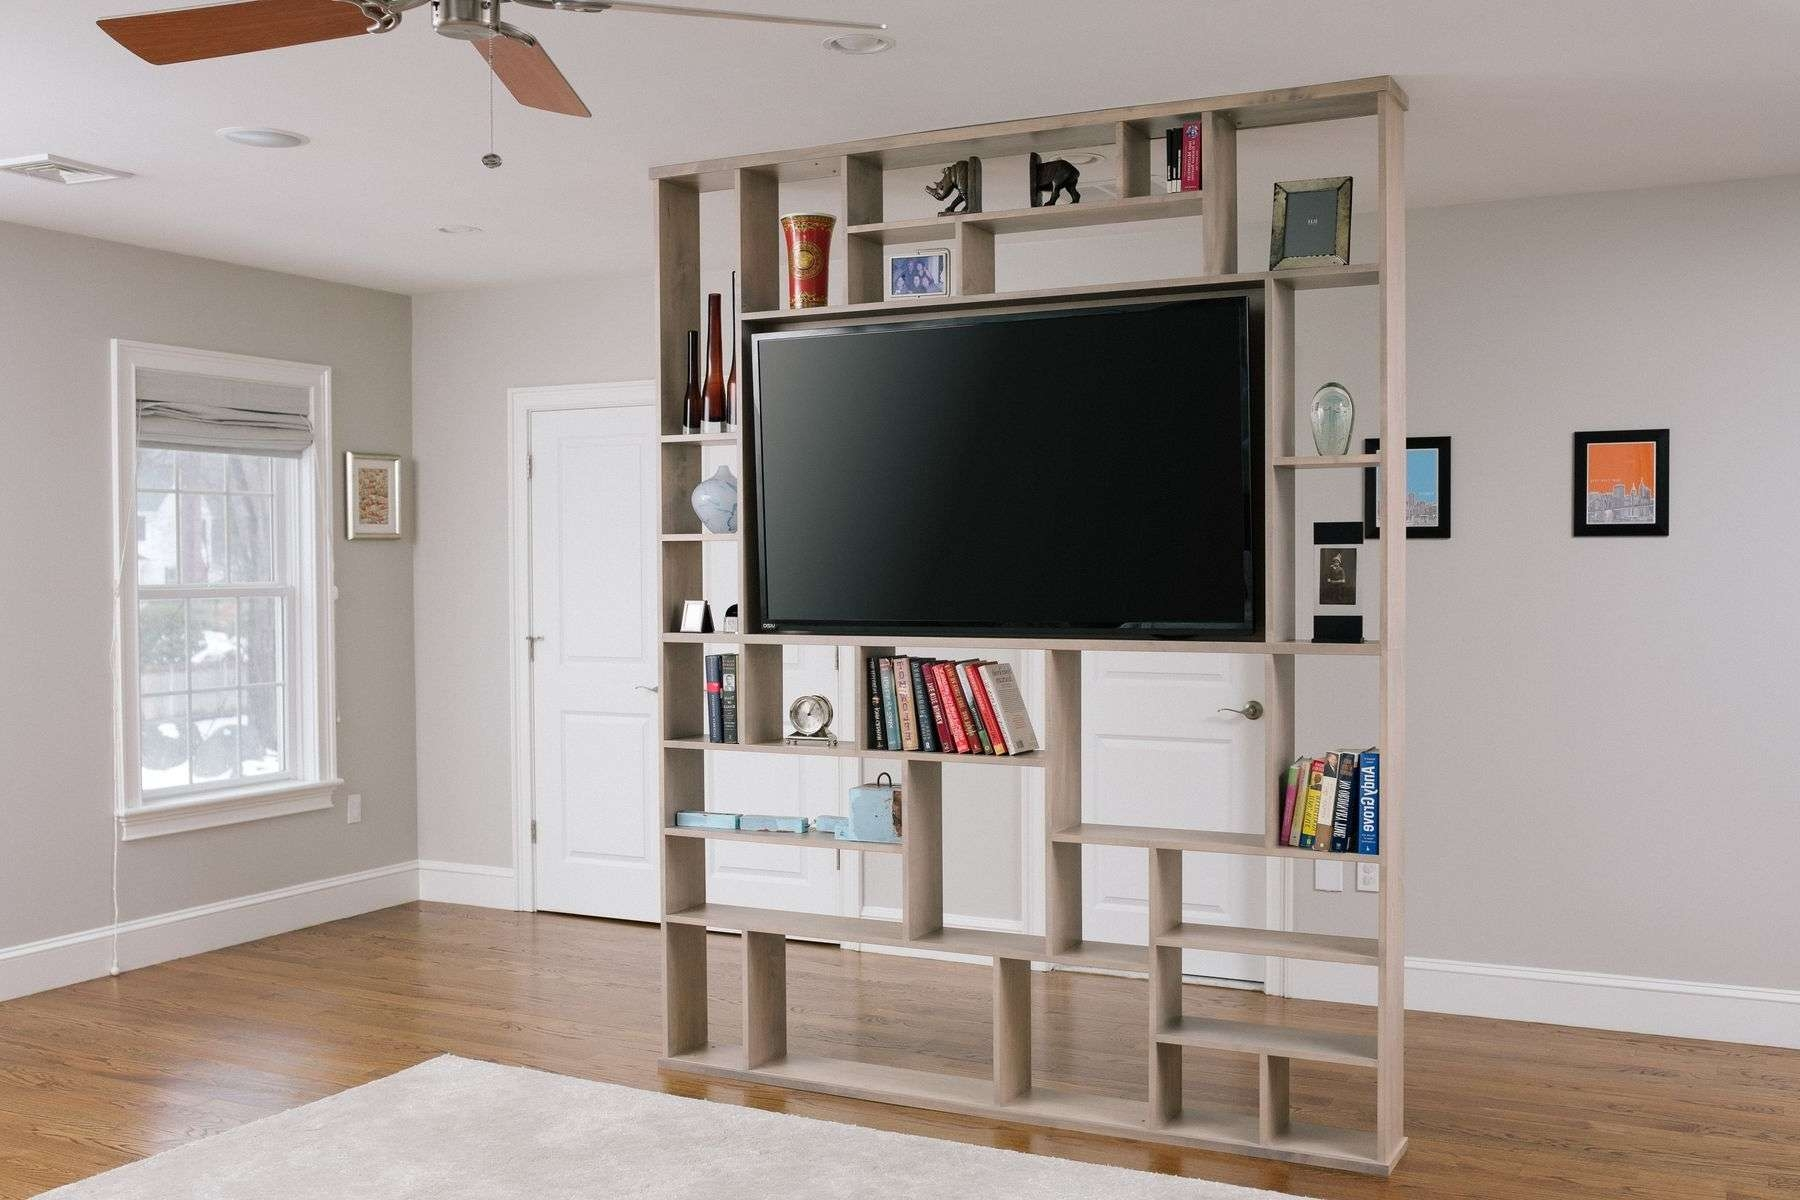 Hand Crafted Lexington Room Divider / Bookshelf / Tv Standcorl For Tv Stands And Bookshelf (View 6 of 15)